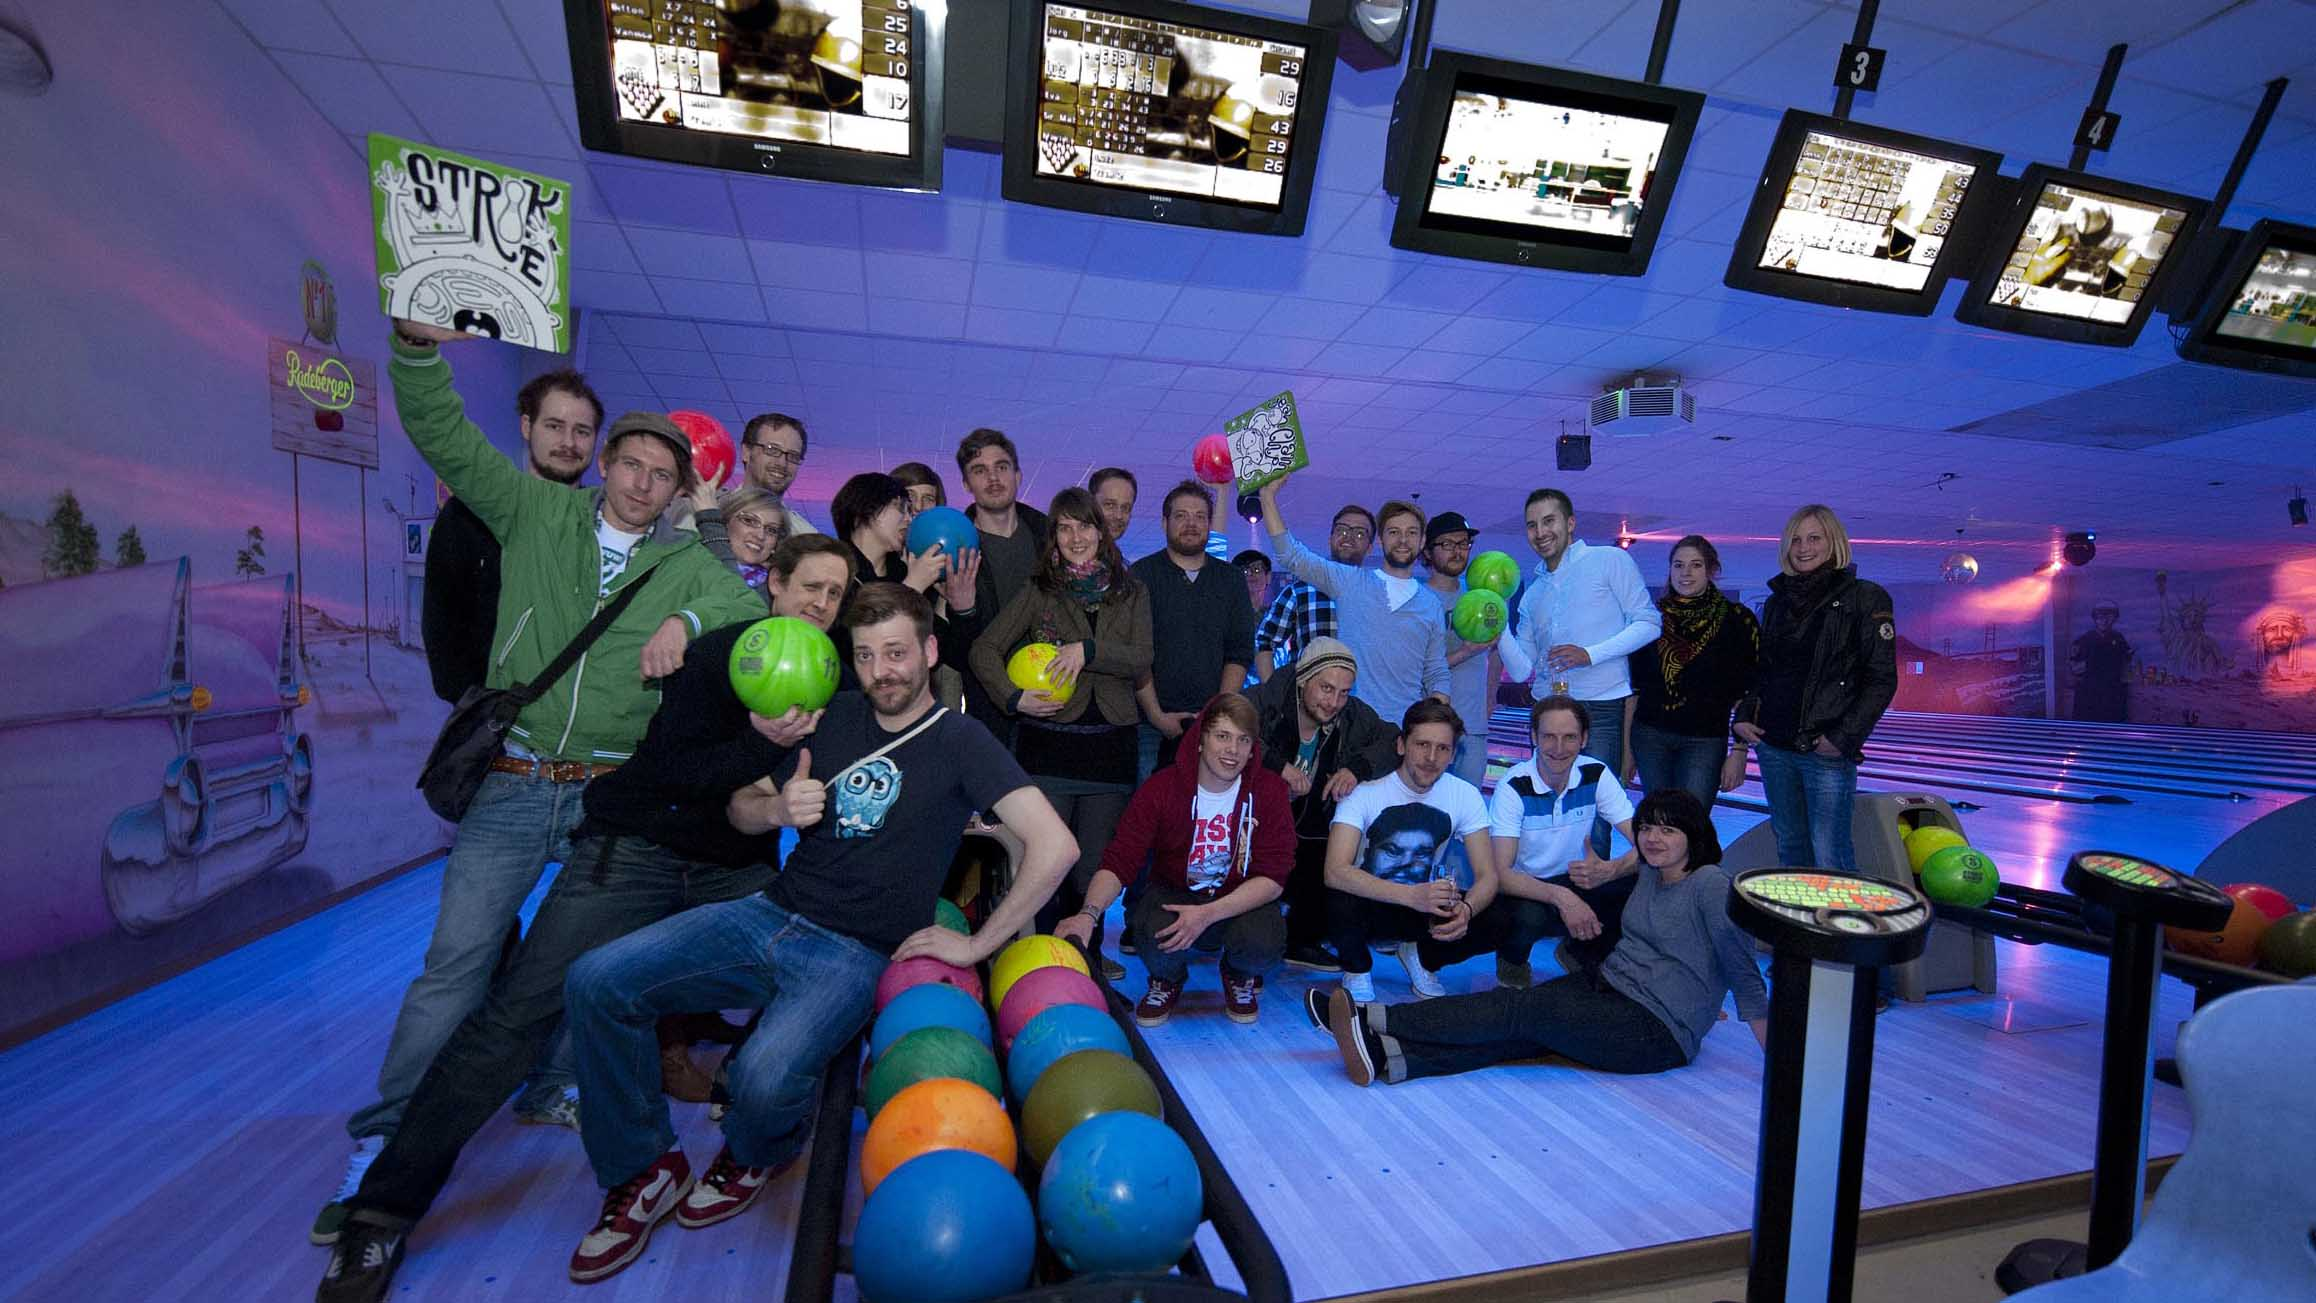 Pinguin Bowling Bar in Celle, Gruppe